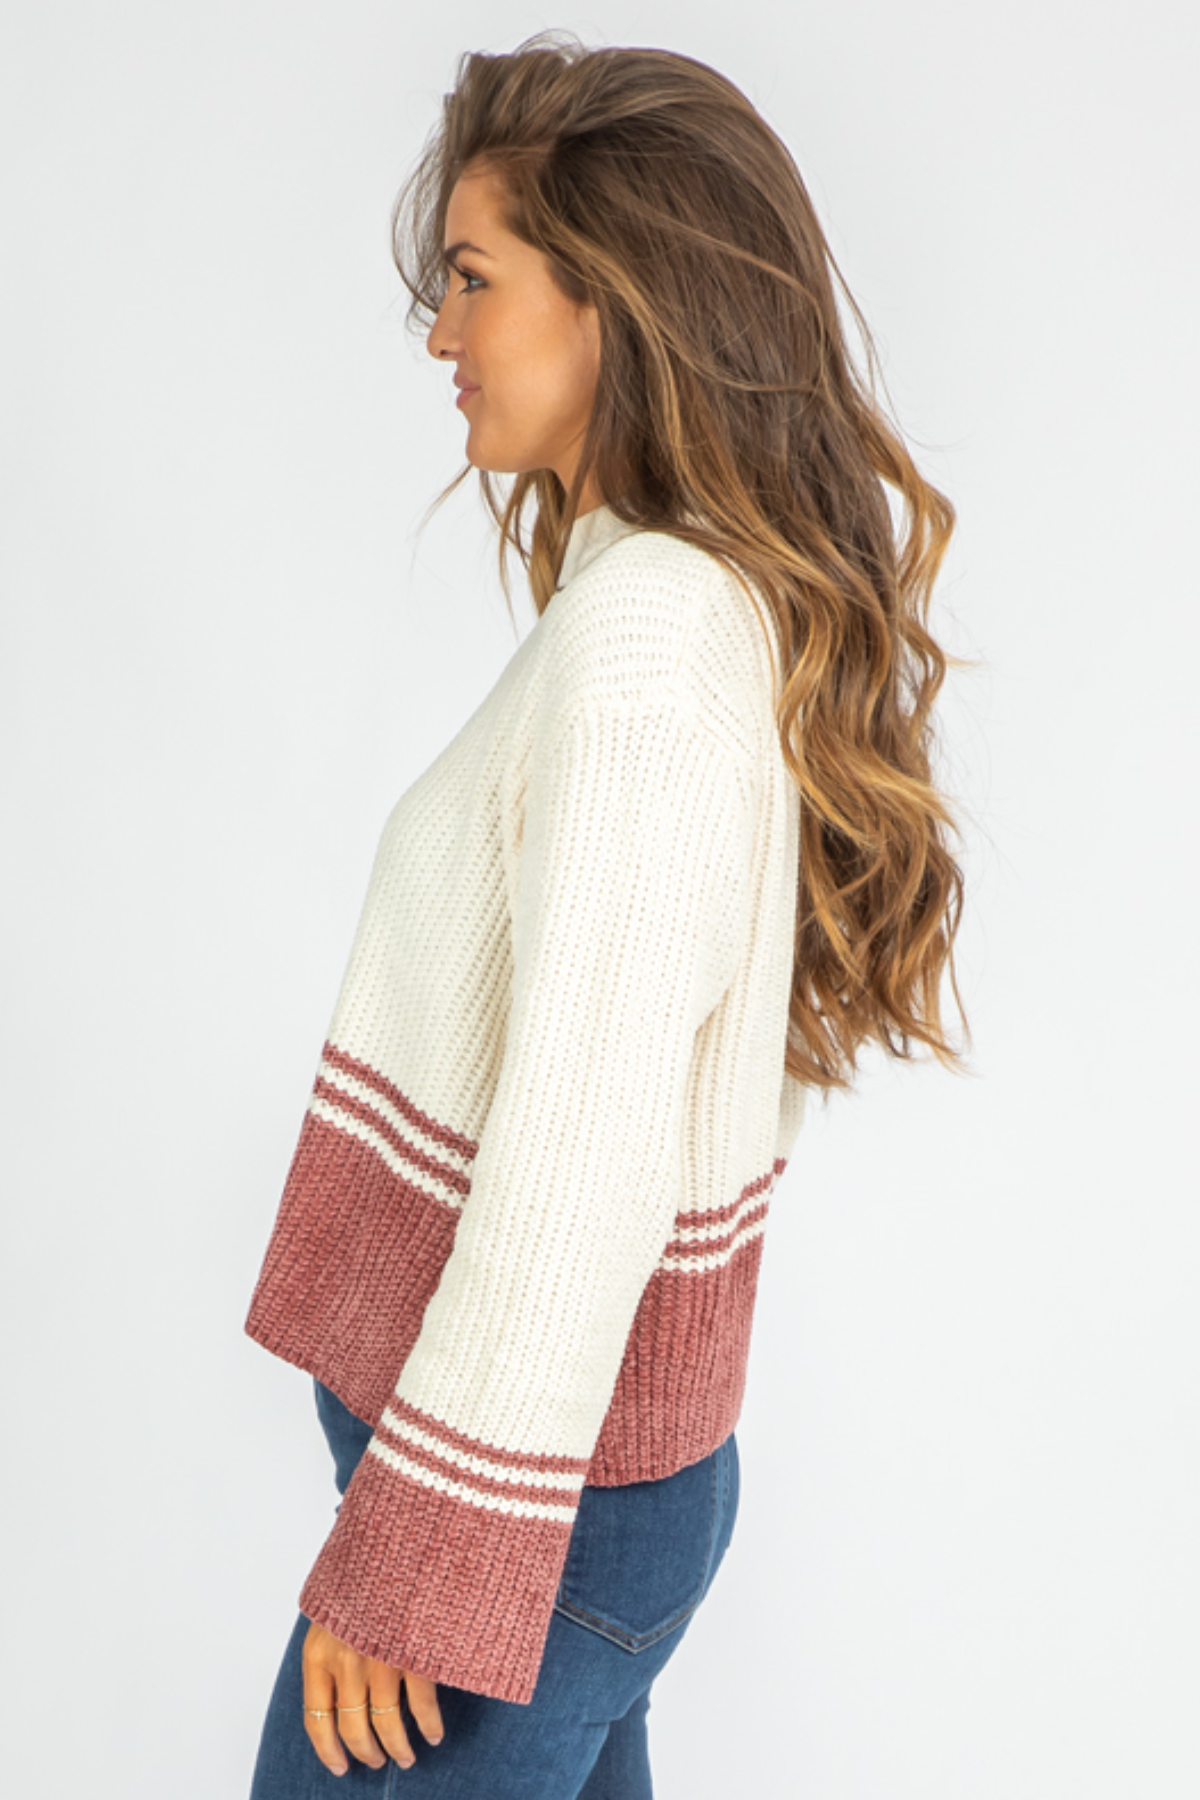 IVORY + BRICK KNIT SWEATER